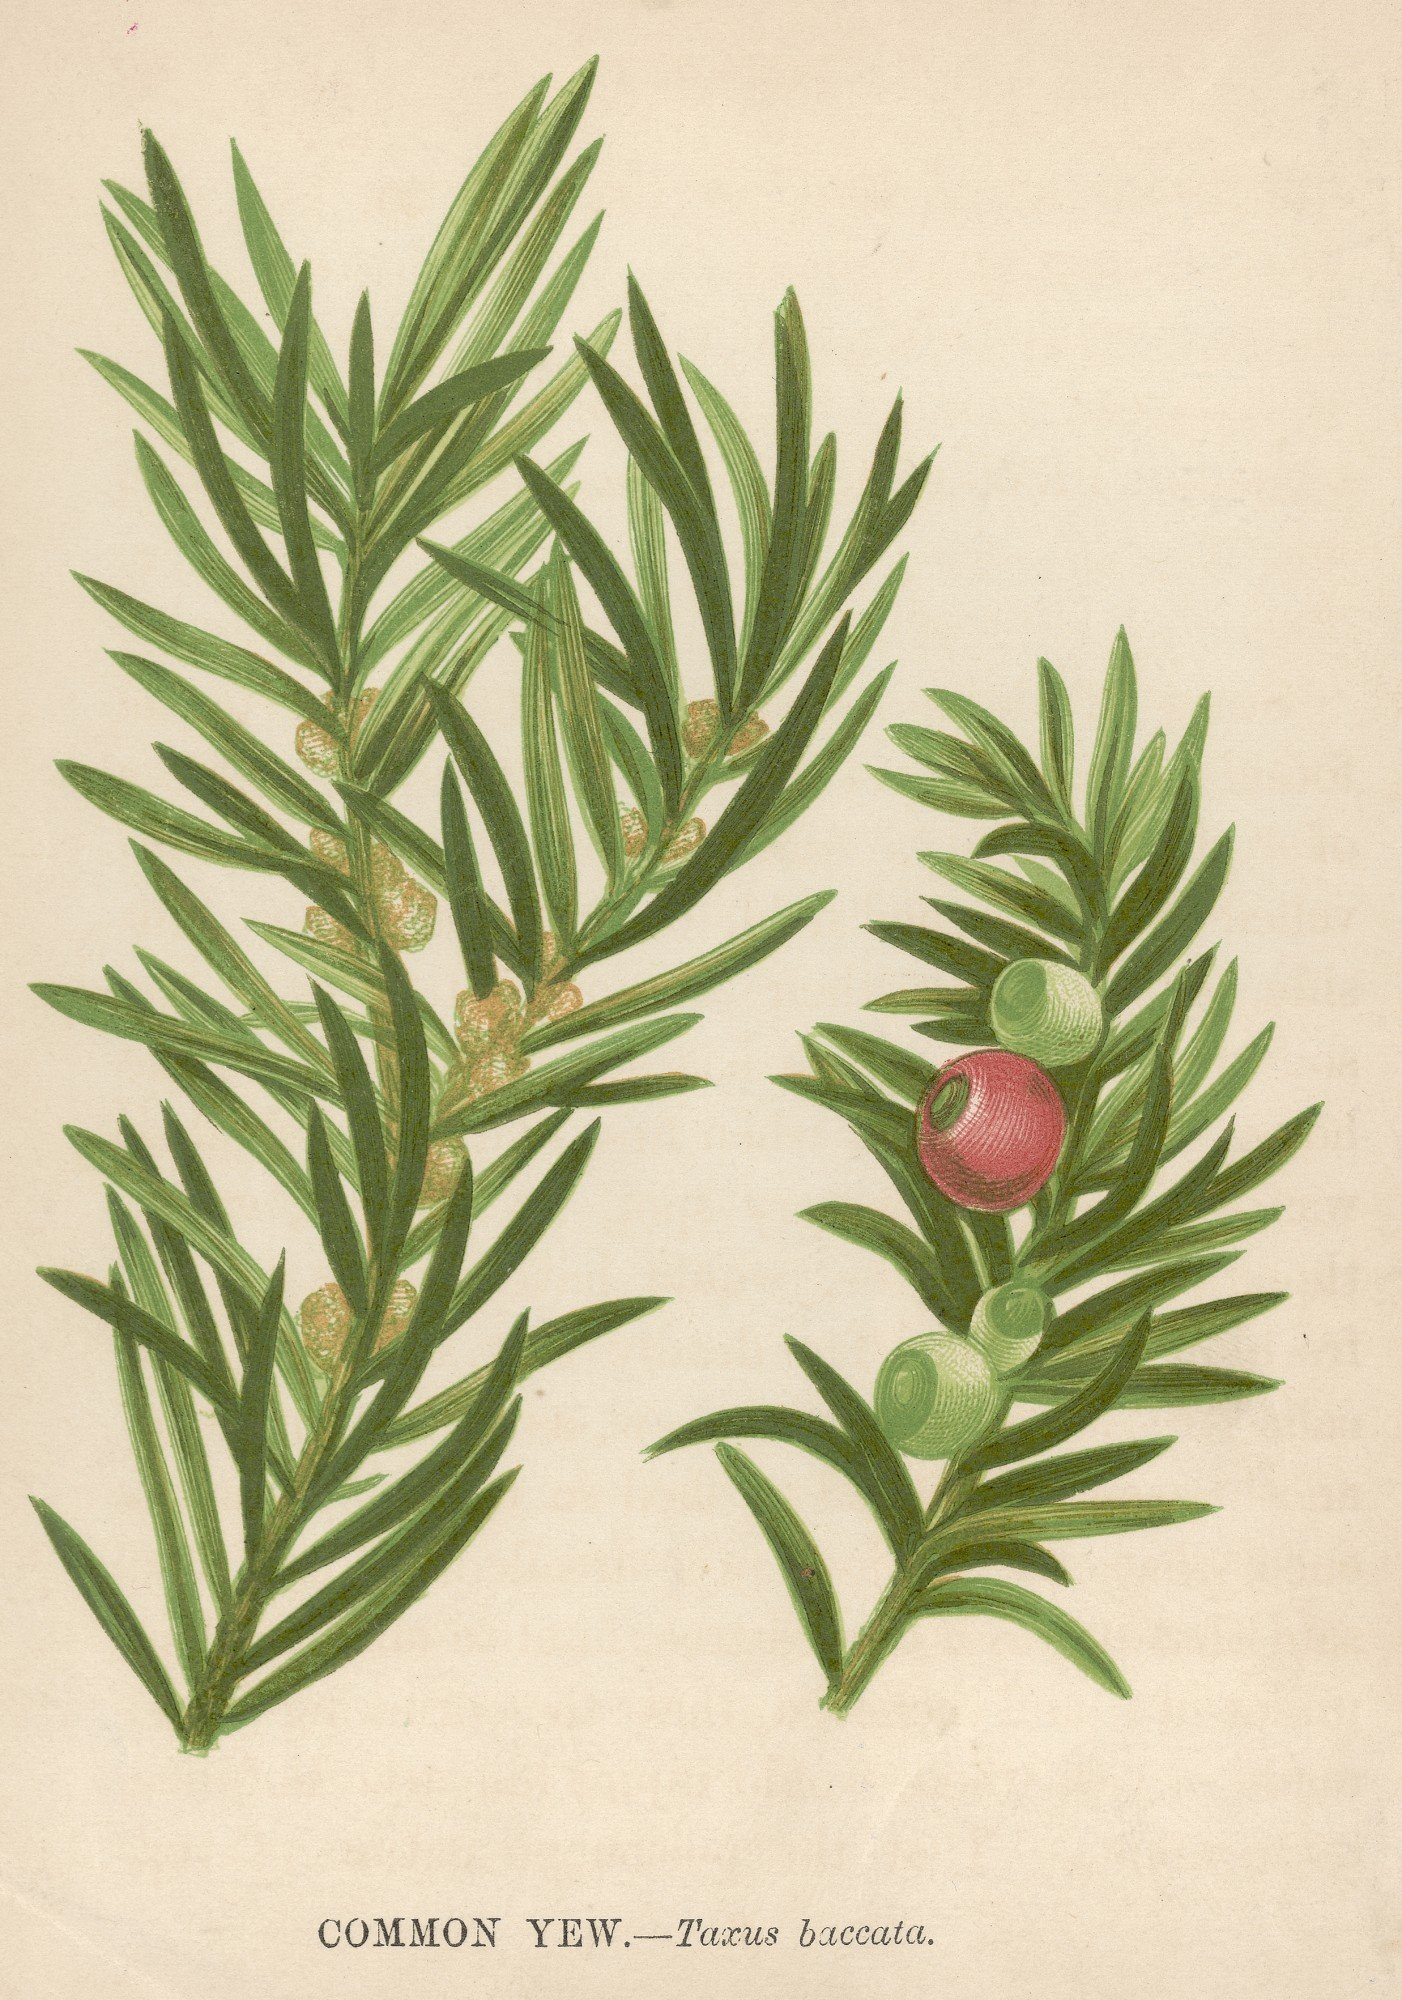 Illustration entitled 'Common Yew - Taxus baccata', depicting flat small leaves, and seed cones, which appear like small red berries, circa 1850. (Photo by Hulton Archive/Getty Images)